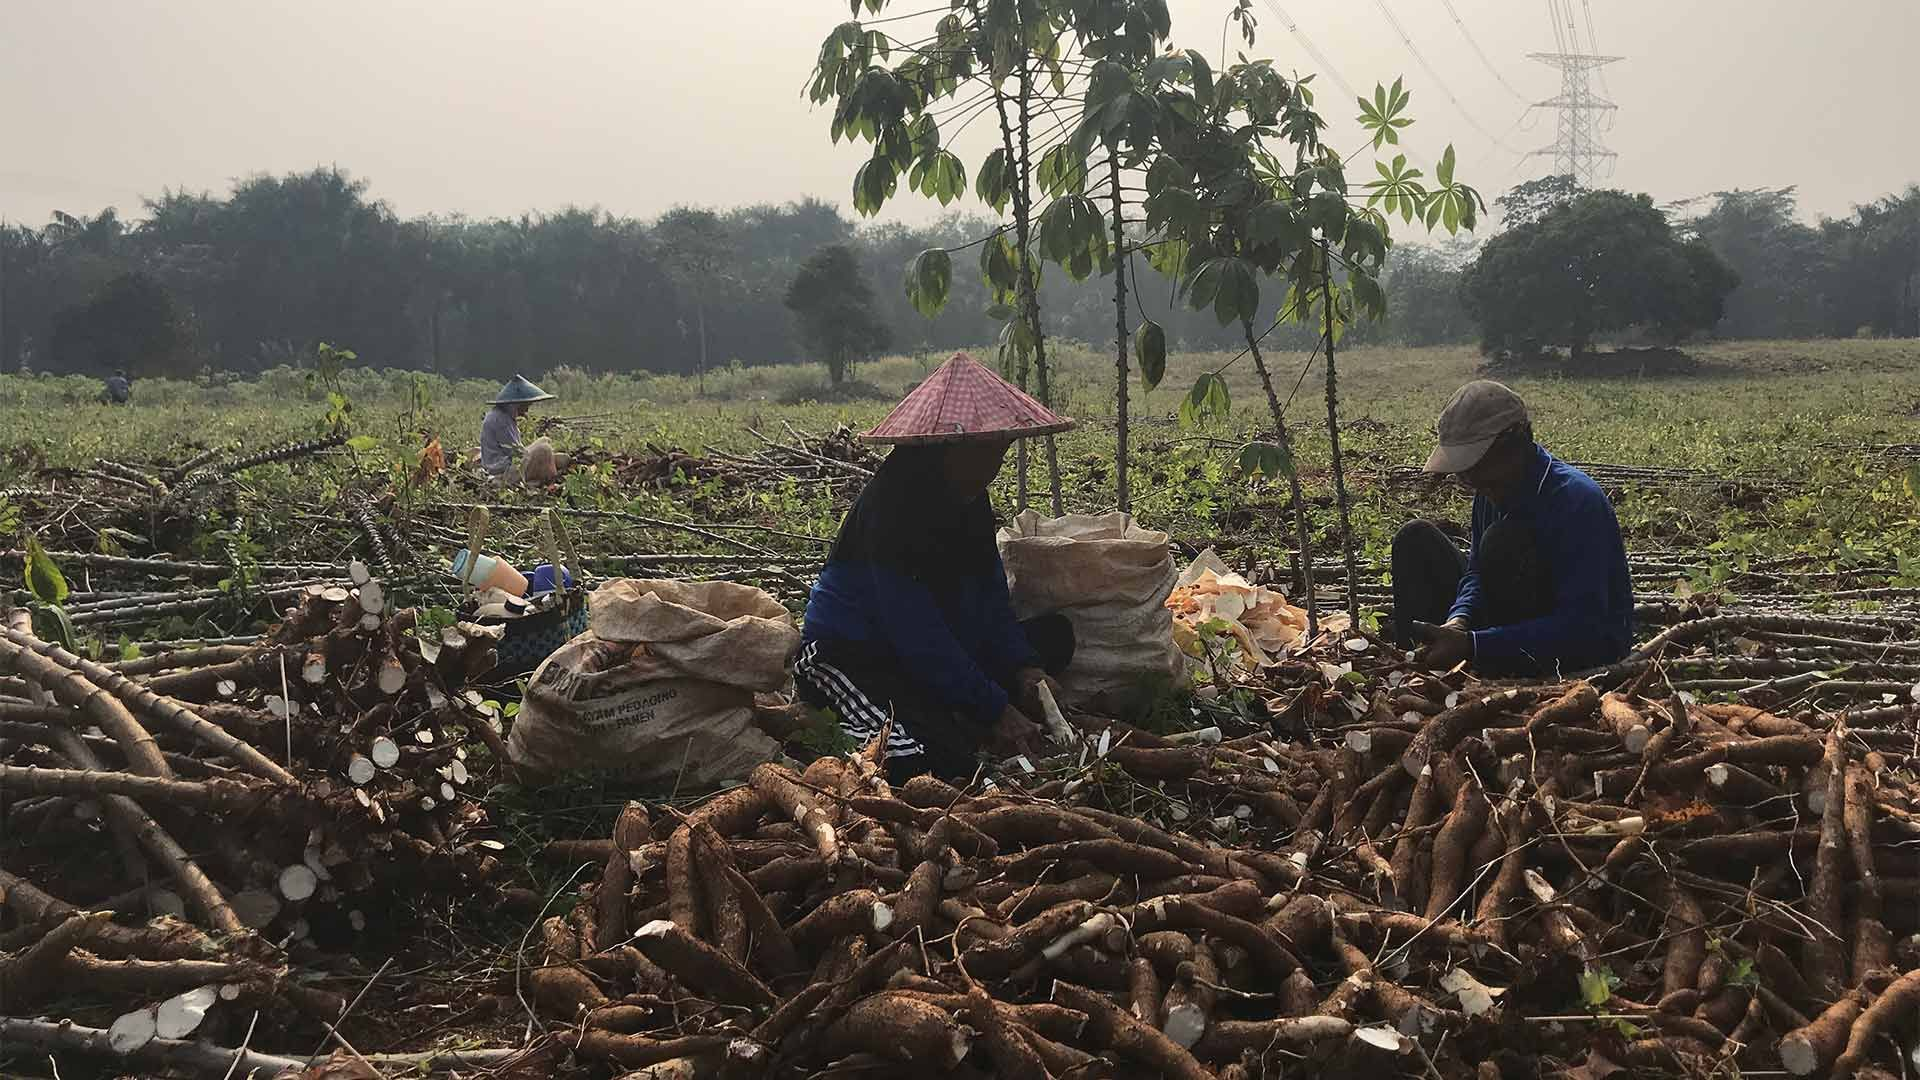 Women and men chop yams into a sack in a field